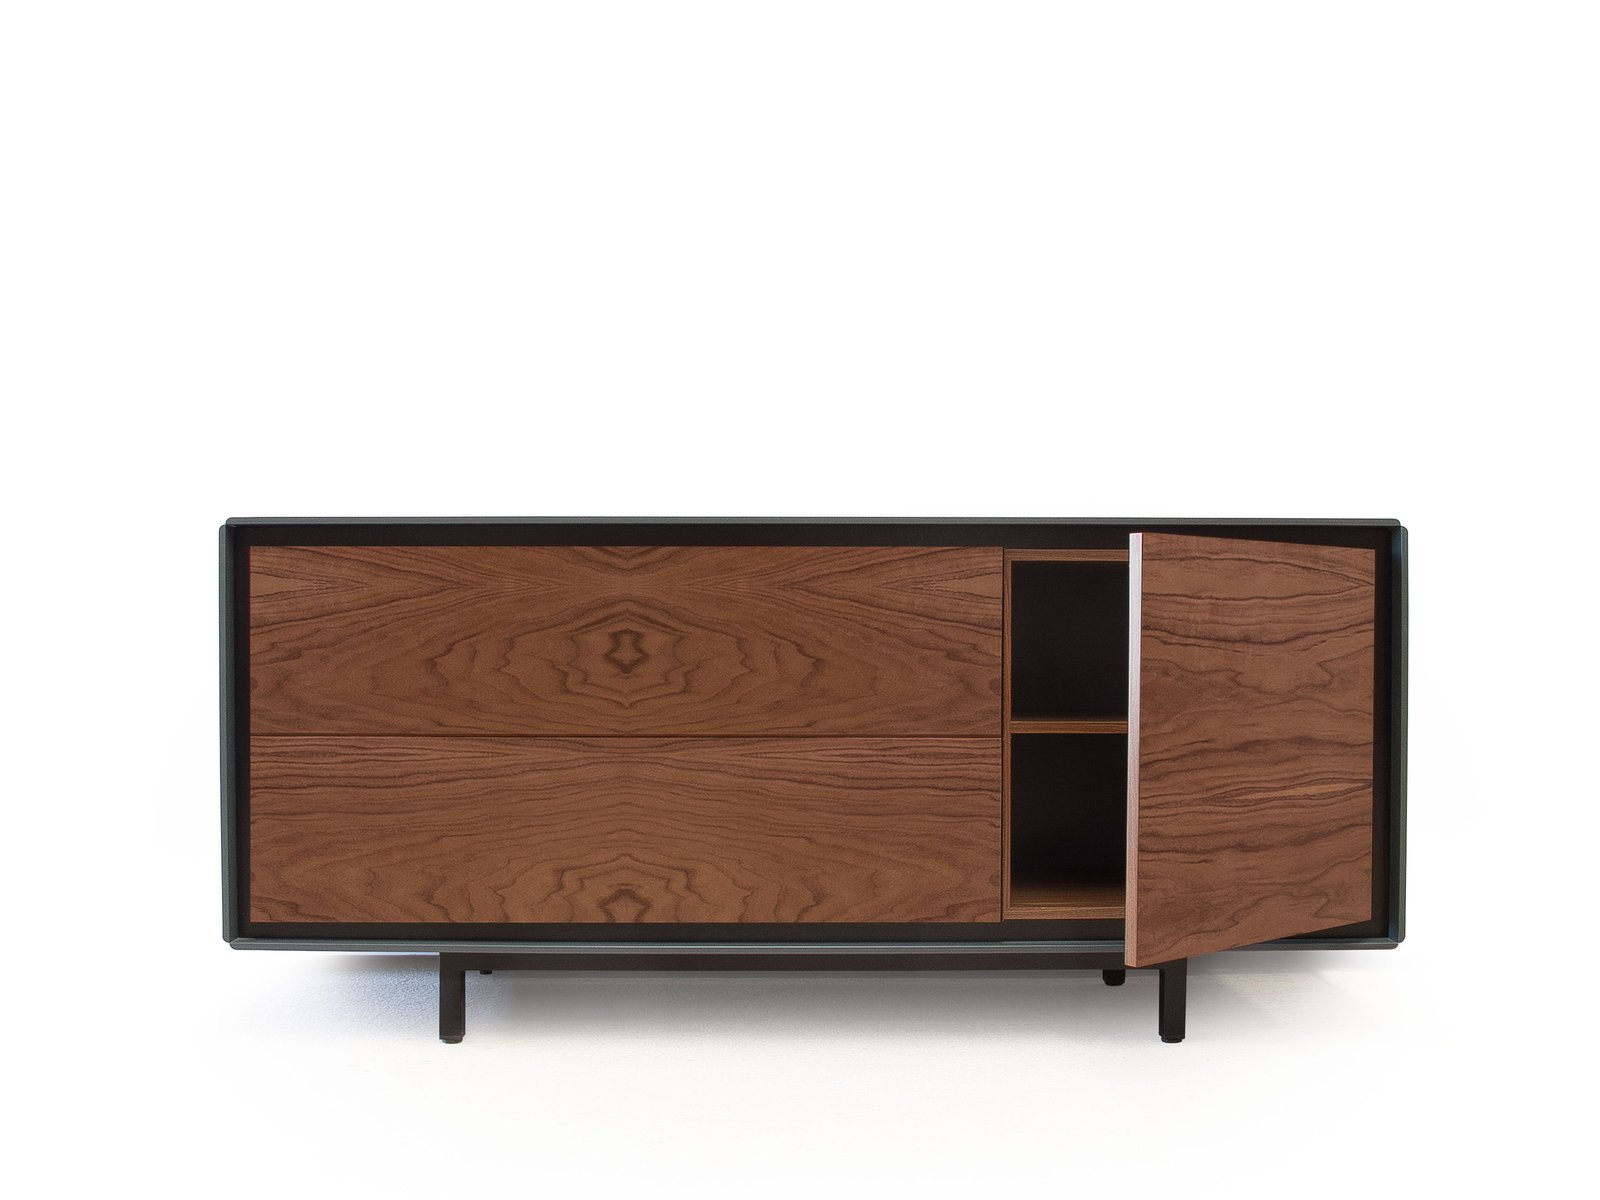 Aro medium height sideboard from piurra for sale at for Sideboard 2 50 m